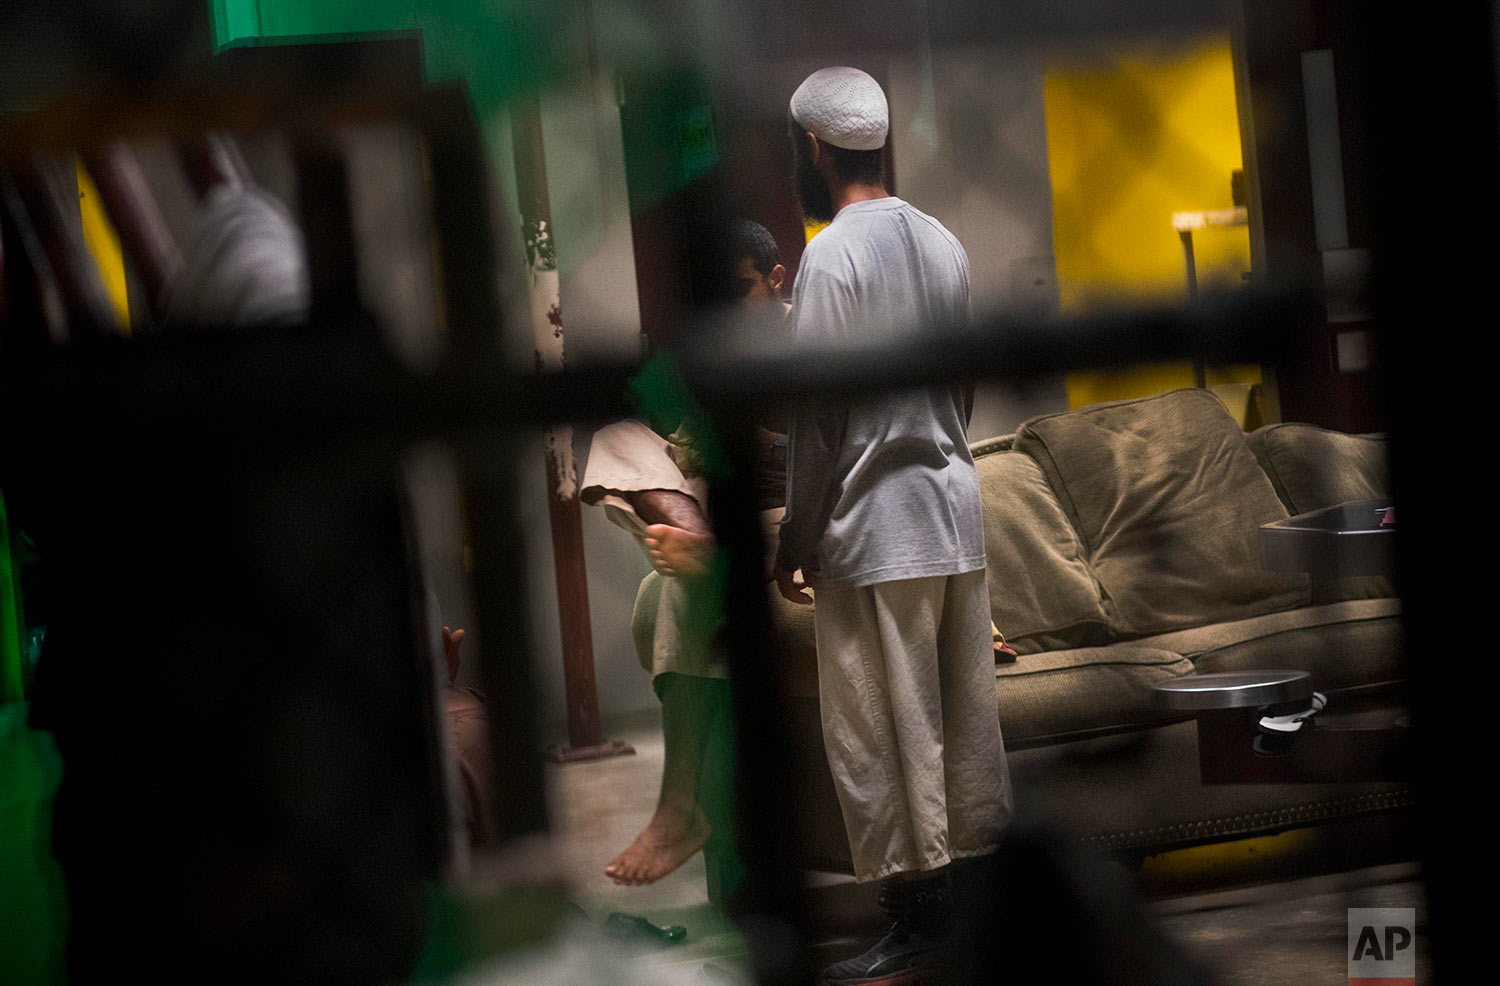 Detainees chat before evening prayers inside the Camp VI detention facility at the naval base at Guantanamo Bay, June 6, 2018. This is a recreational space where detainees can visit and eat meals.